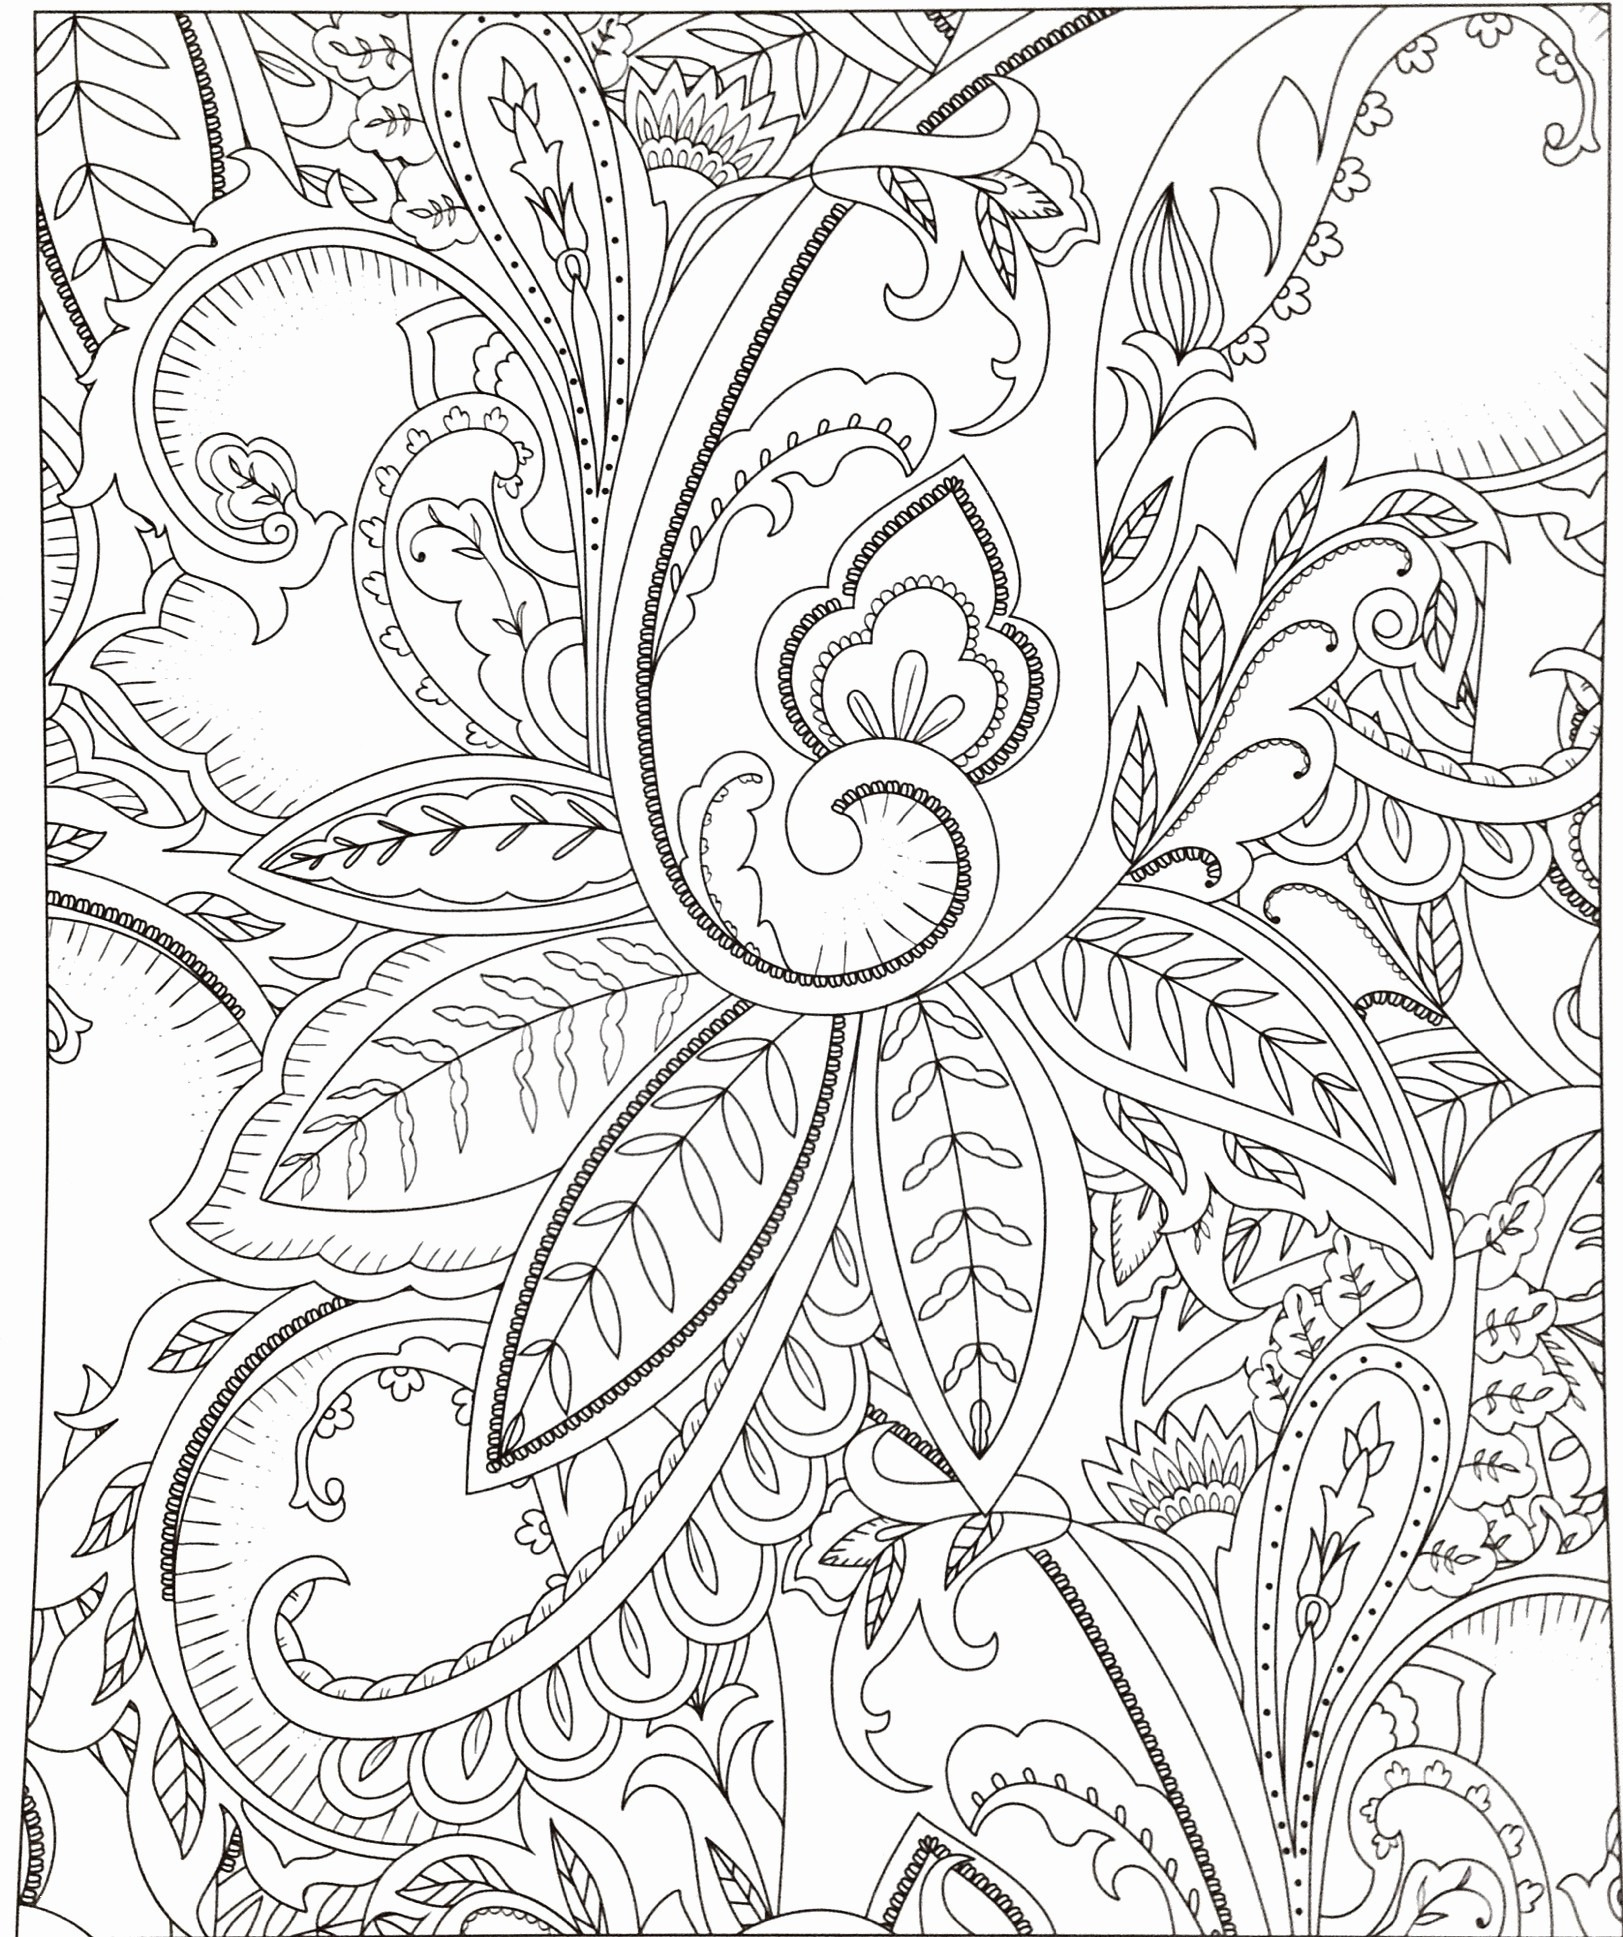 coloring pages for cars Collection-Ausmalbilder Mario Neu Mario Coloring Games Awesome Home Coloring Pages Best Color Sheet 0d 11-f